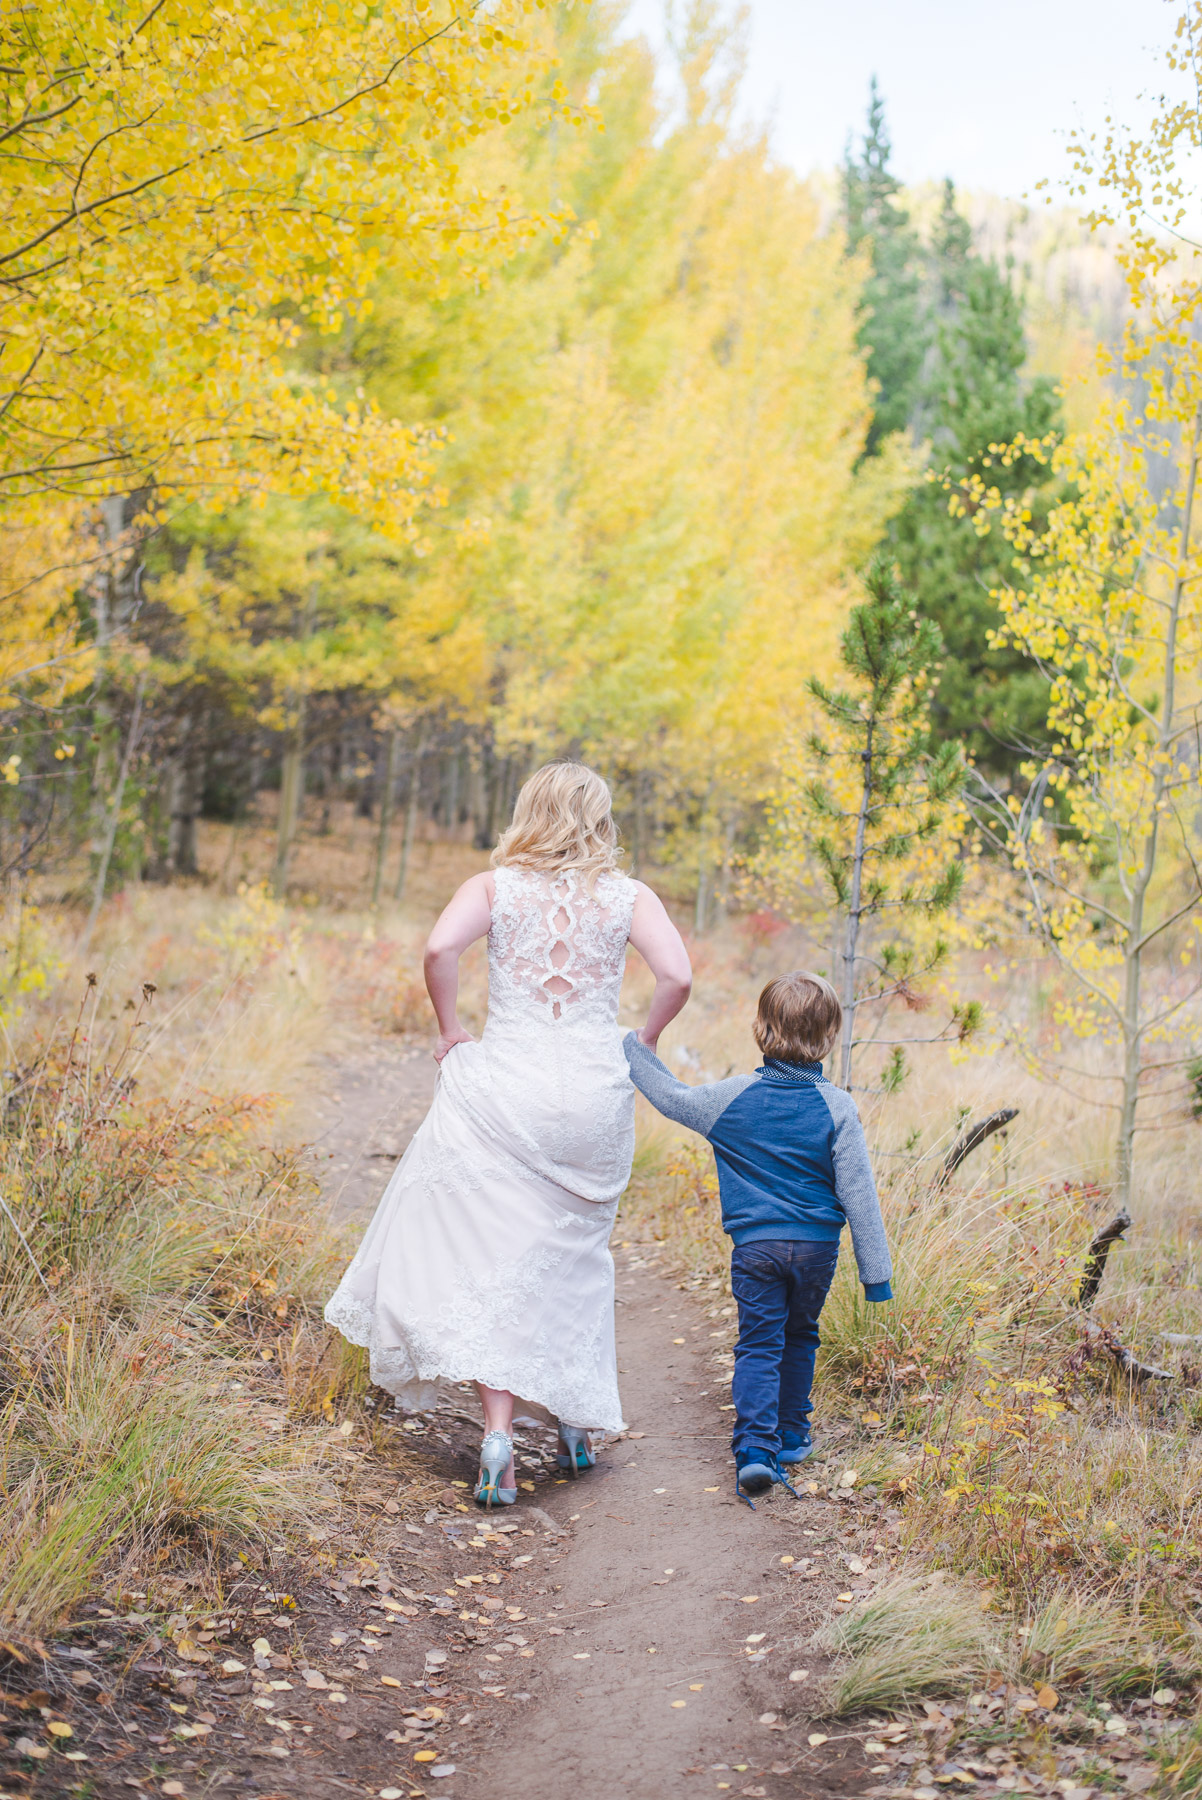 Walking away with young boy - mom and bride in one day |Autumn elopement in Breckenridge, Colorado | Summit Mountain Weddings